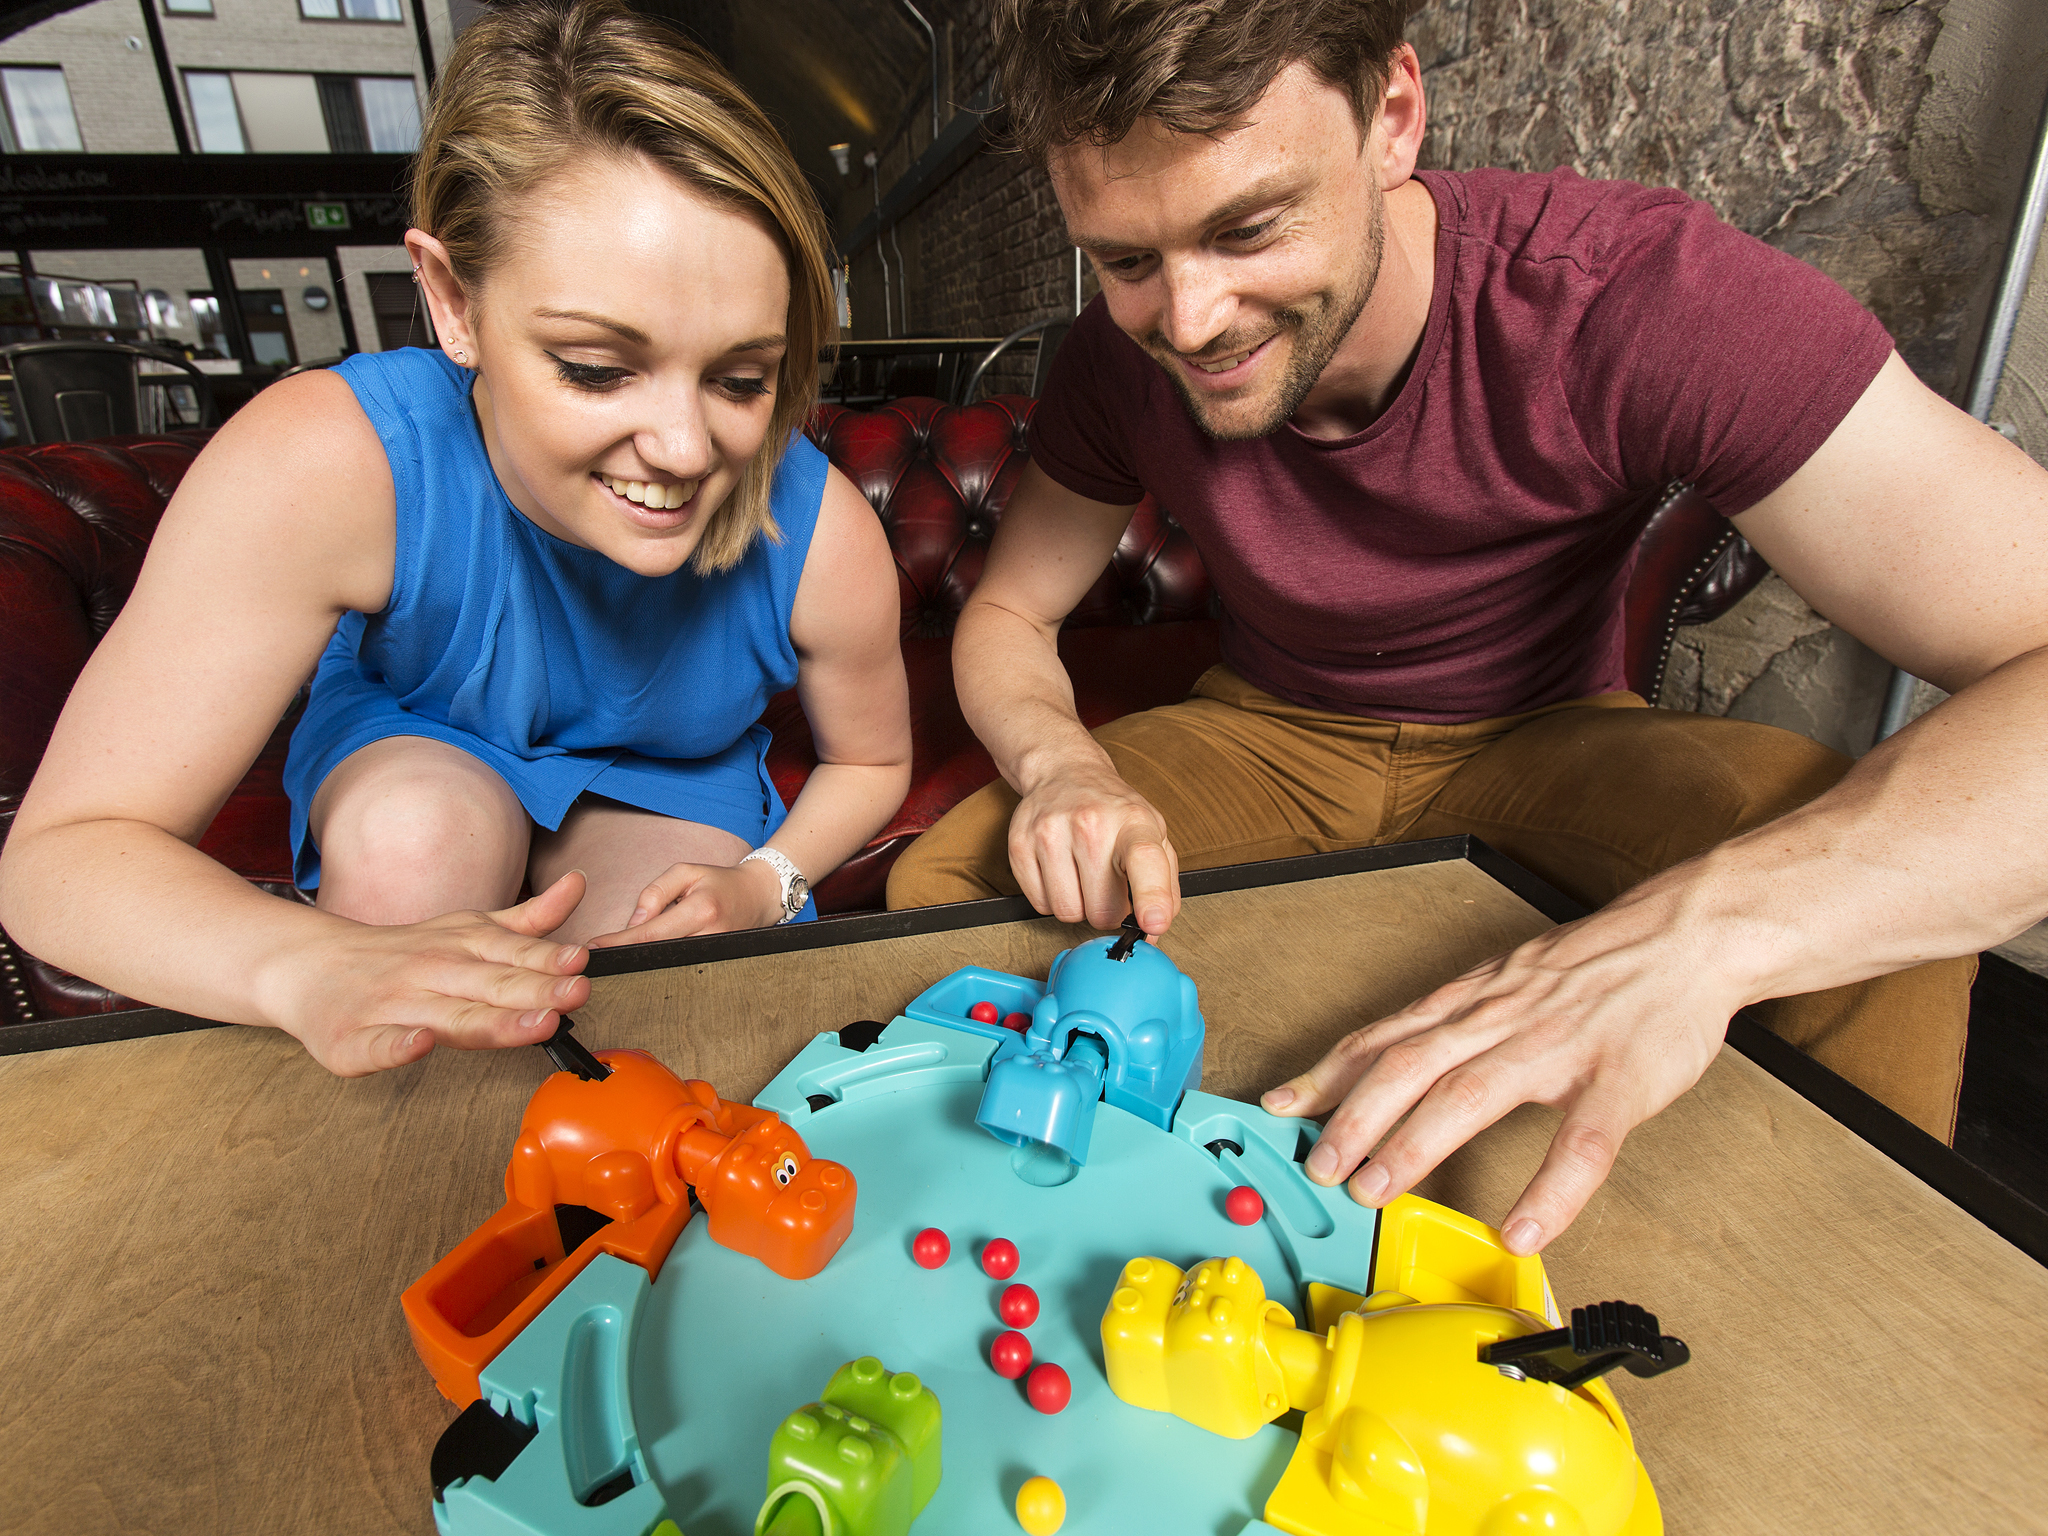 Play Hungry Hungry Hippos at Draughts